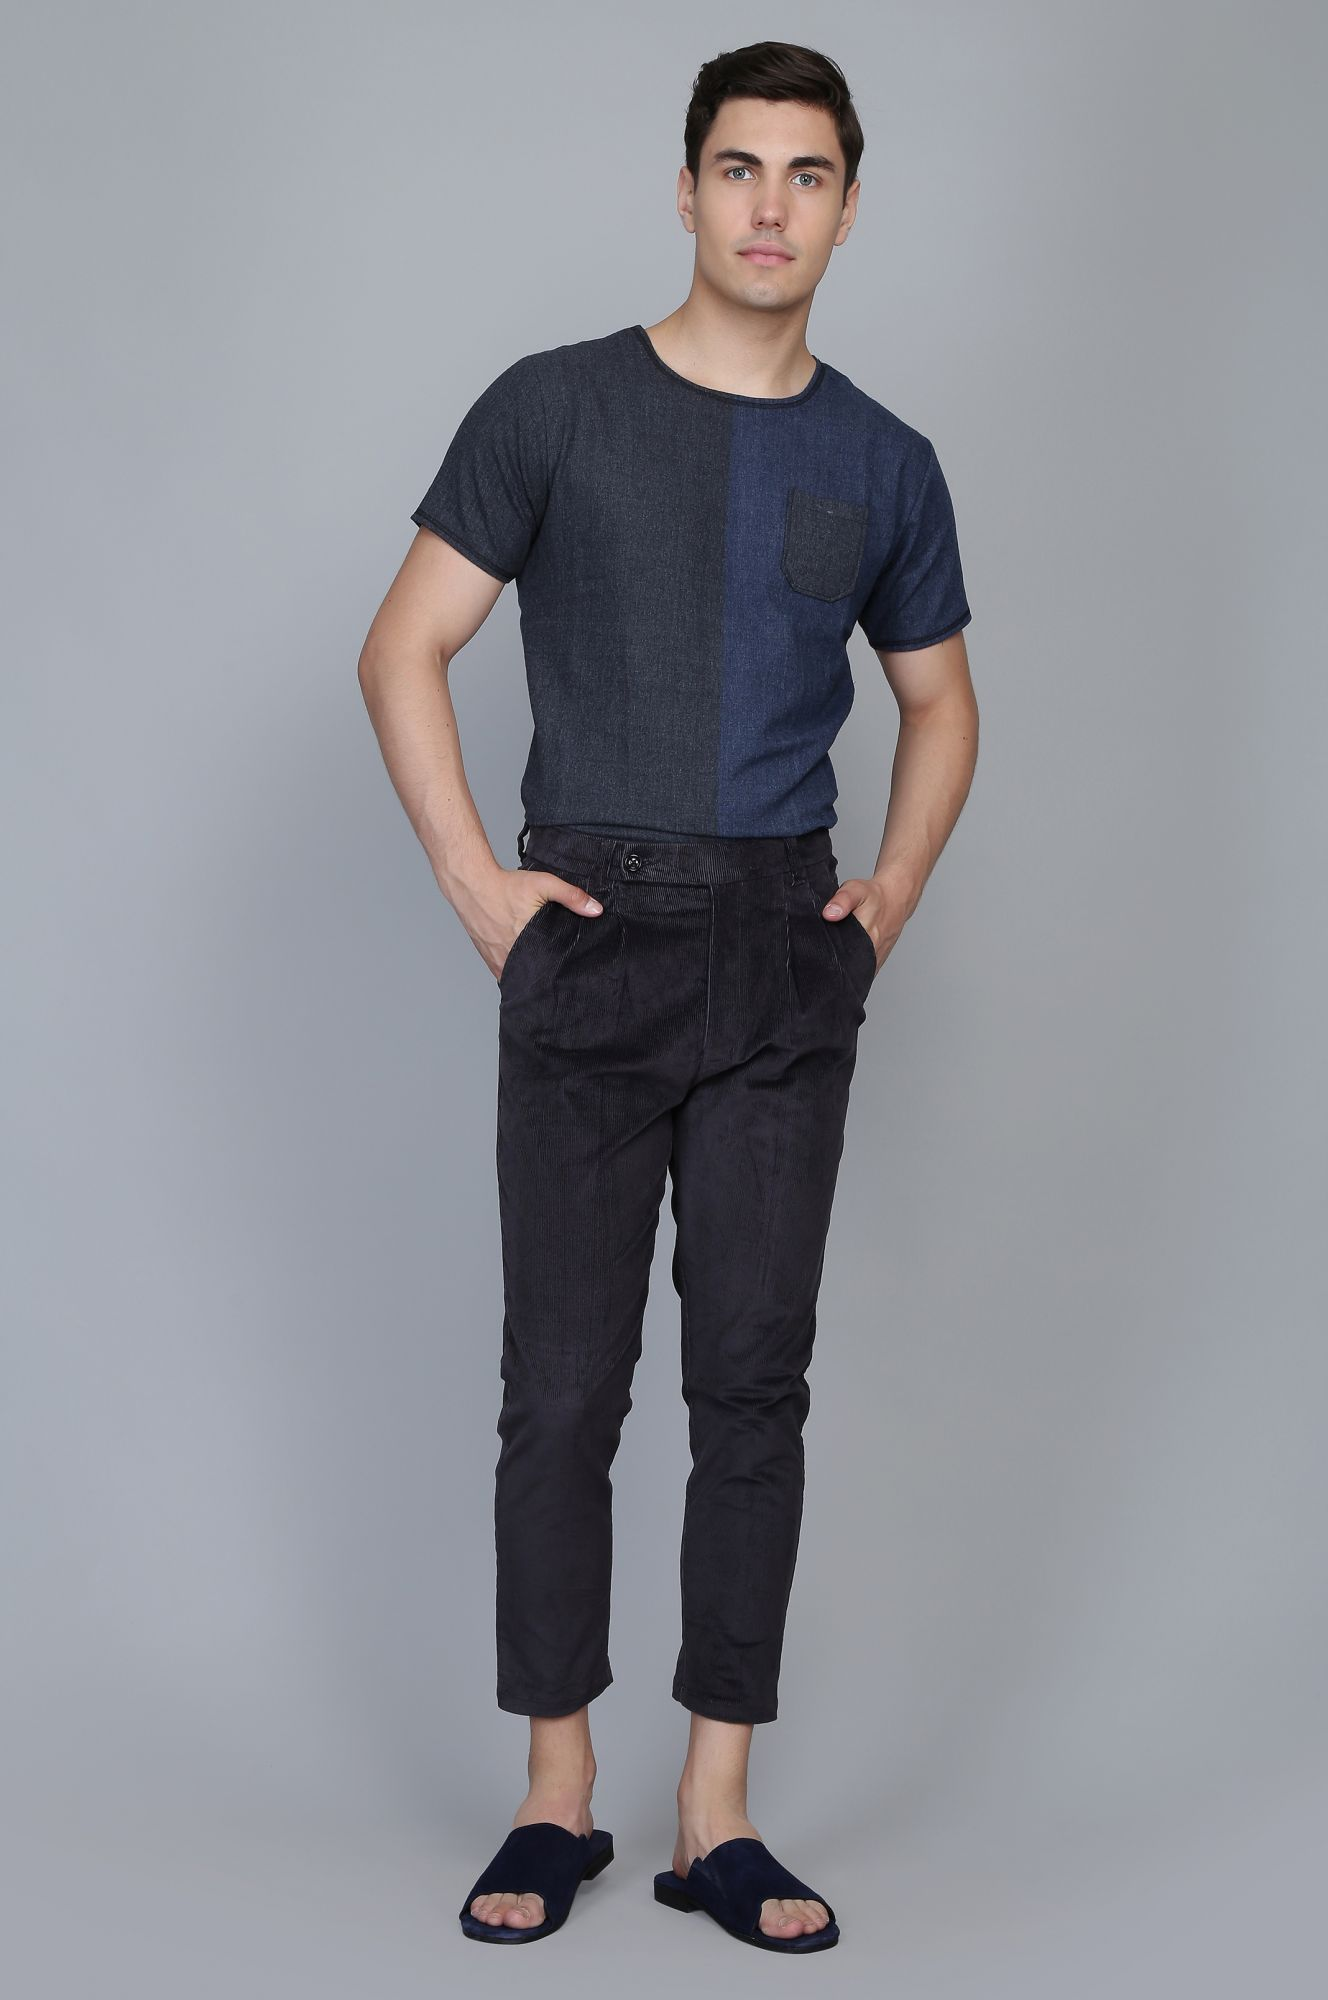 Men's Corduroy Ankle Pants in Black